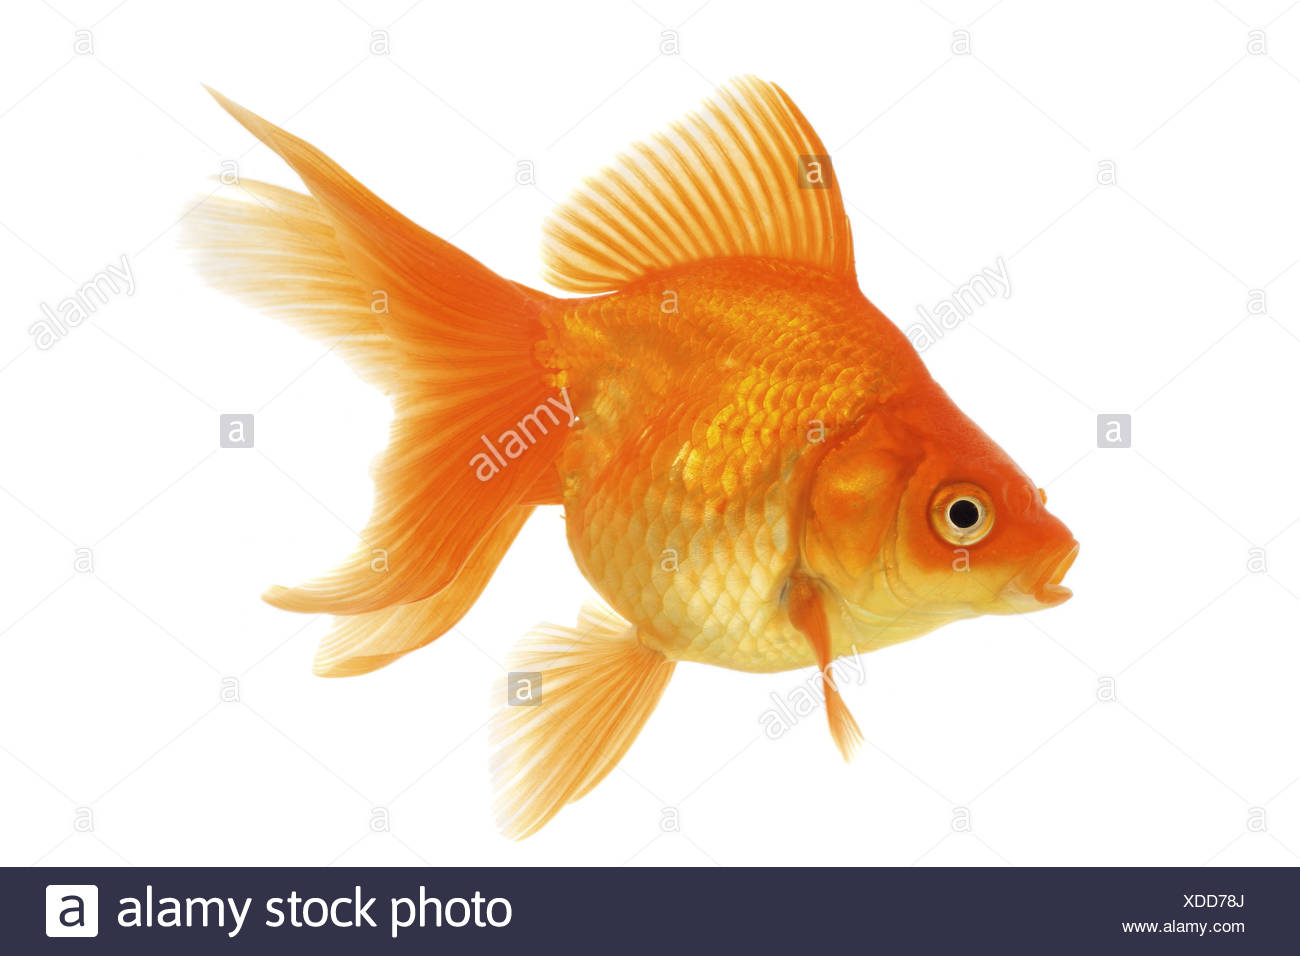 goldfish, common carp, fantail (Carassius auratus auratus) Stock Photo